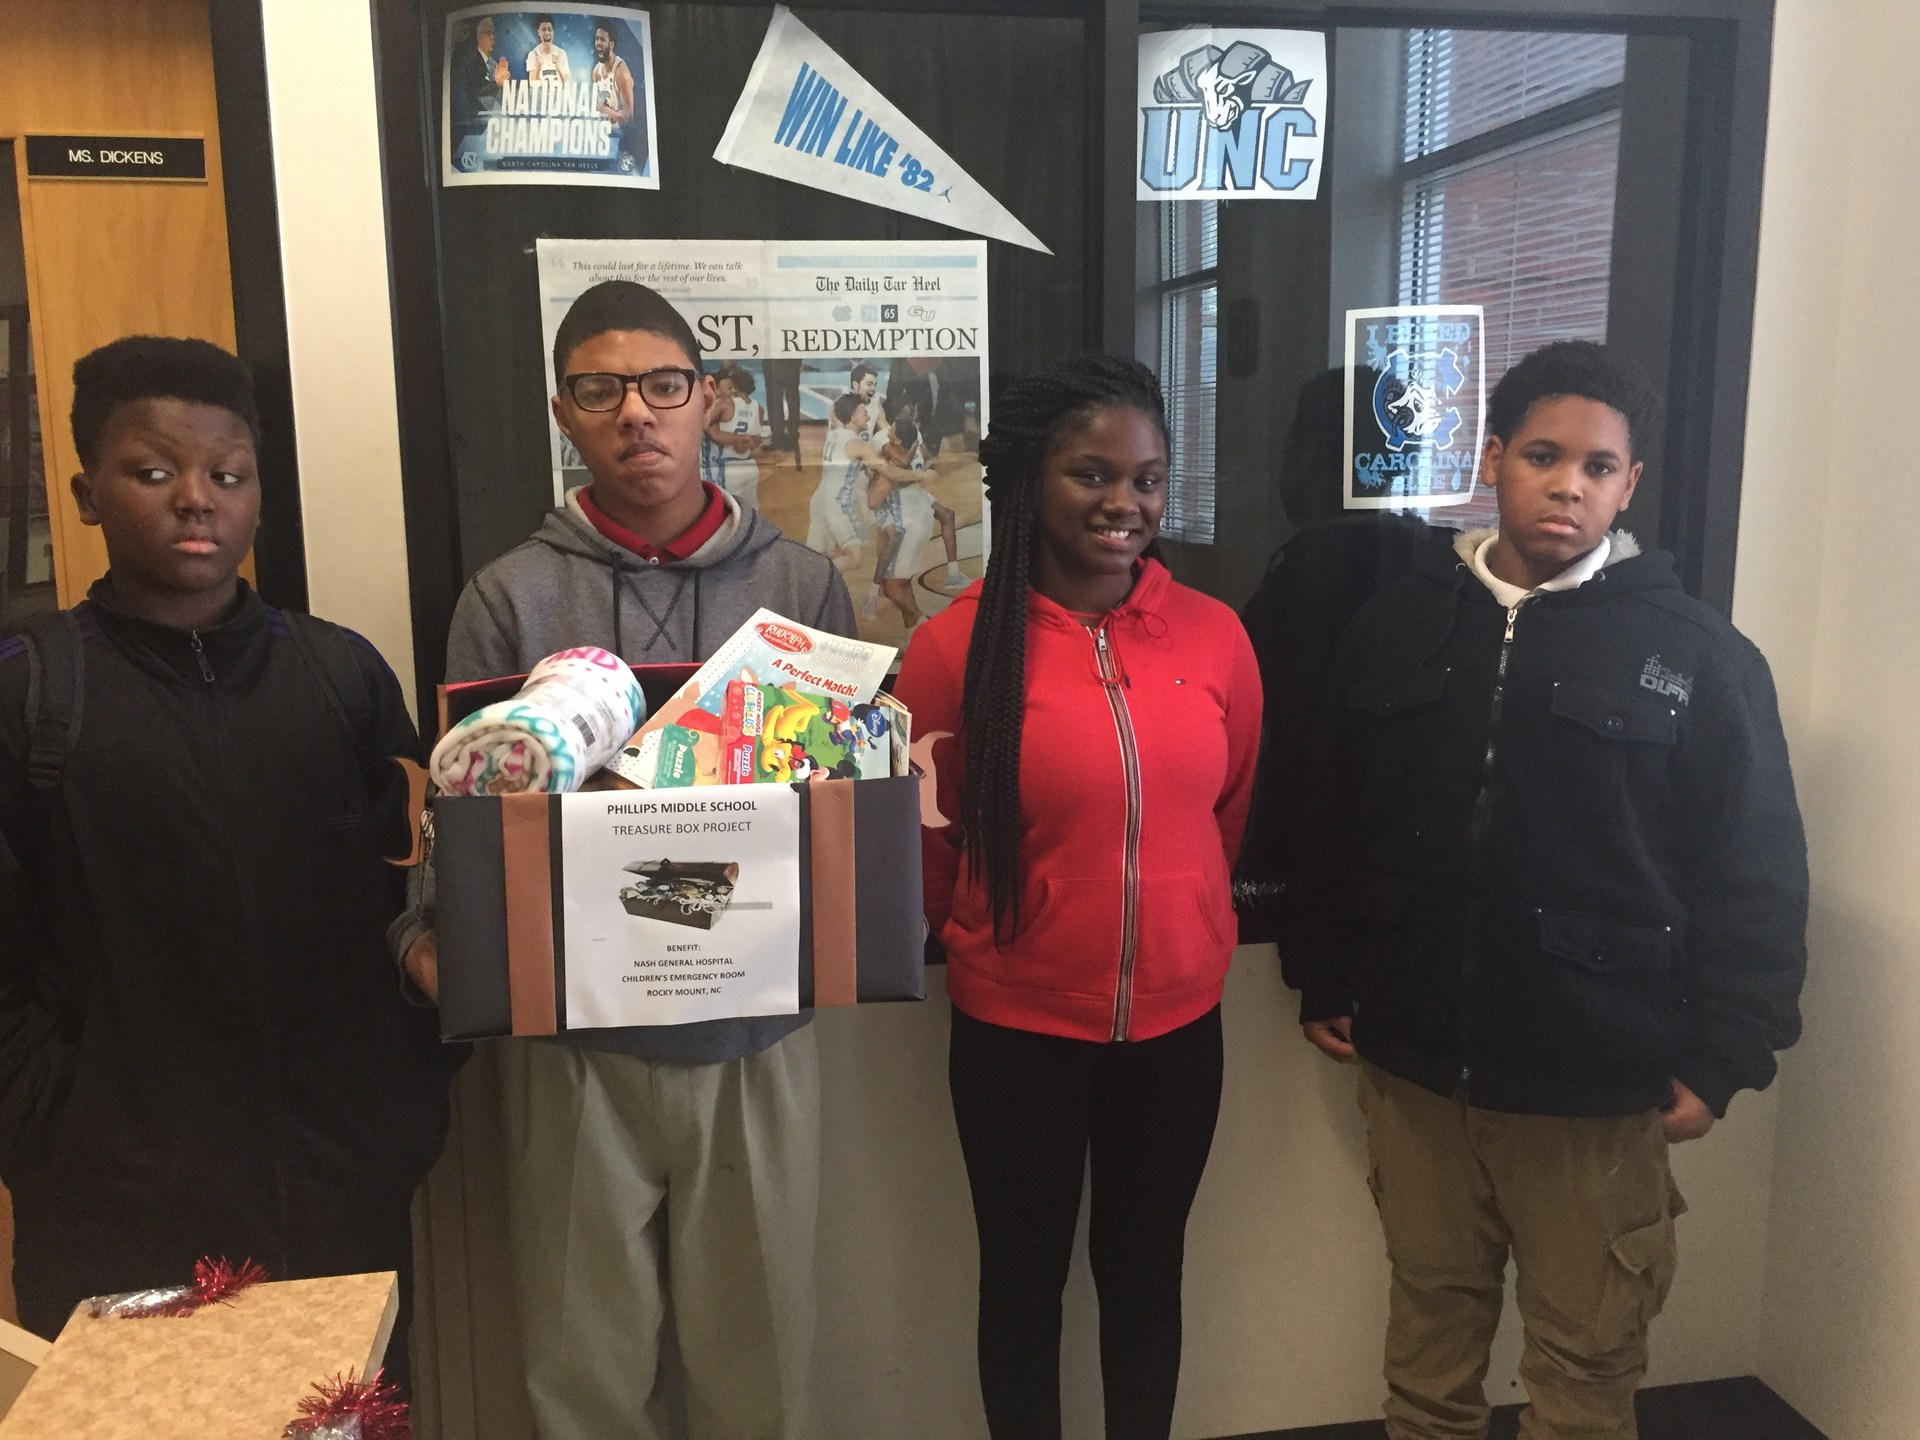 Phillips Scholars provided treasure boxes for the children's unit at Nash General Hospital